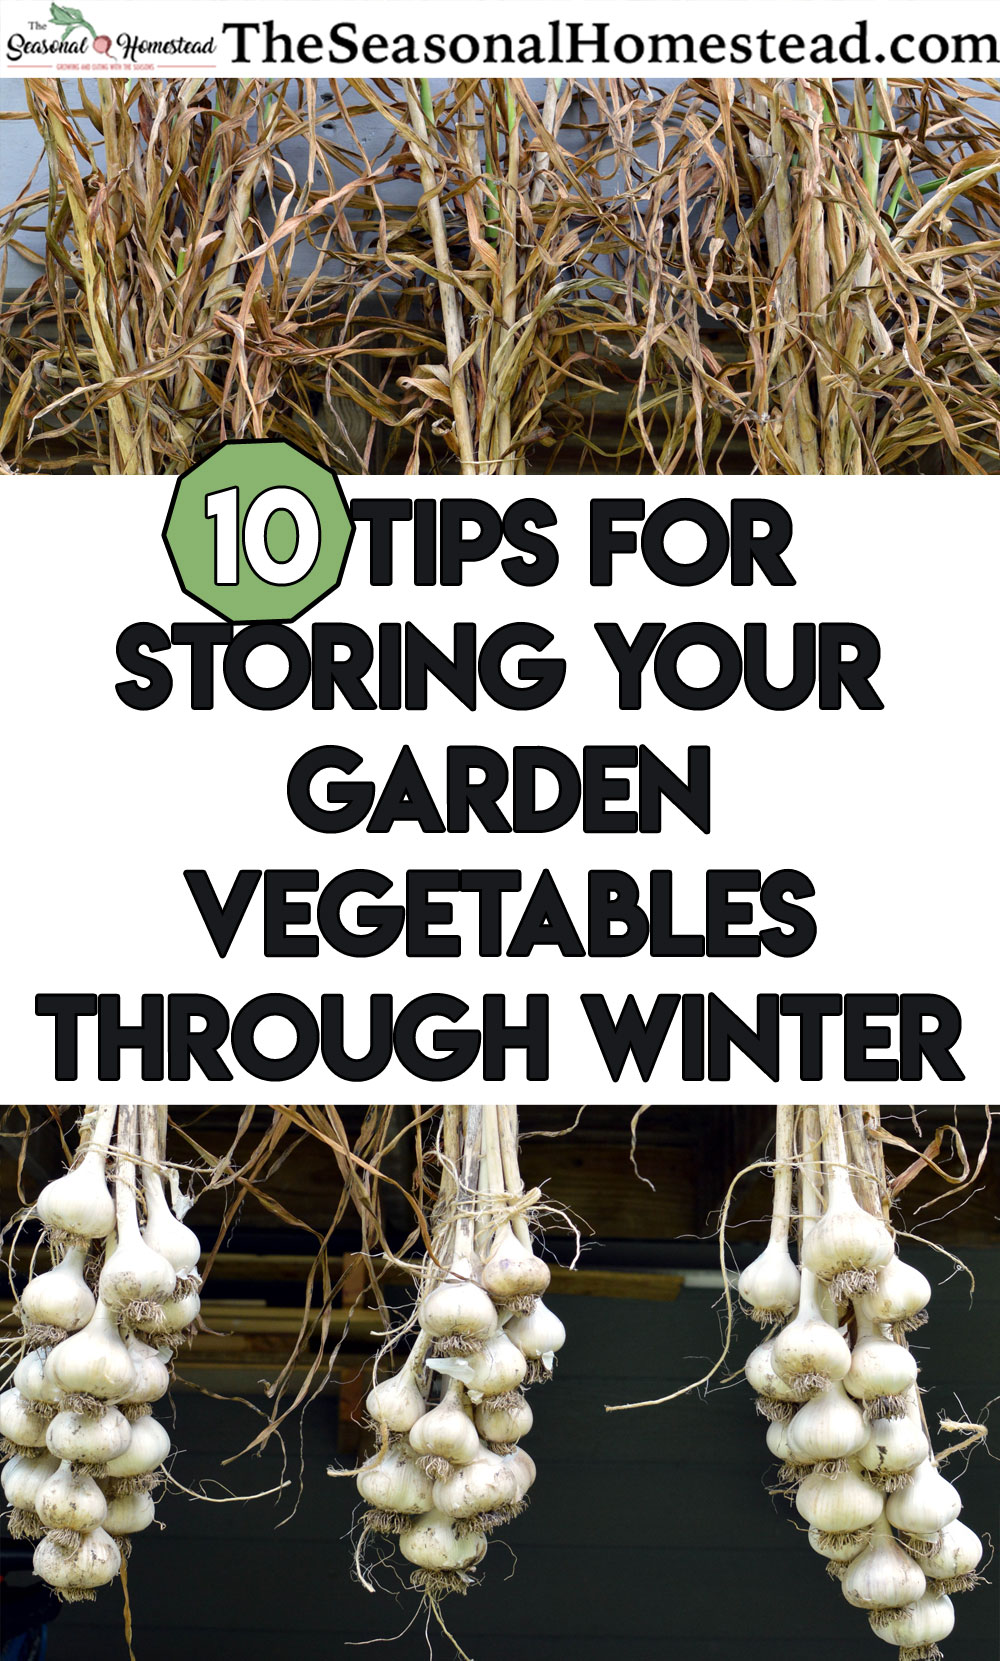 10-Tips-for-stoiring-your-garden-vegetables-through-winter.jpg